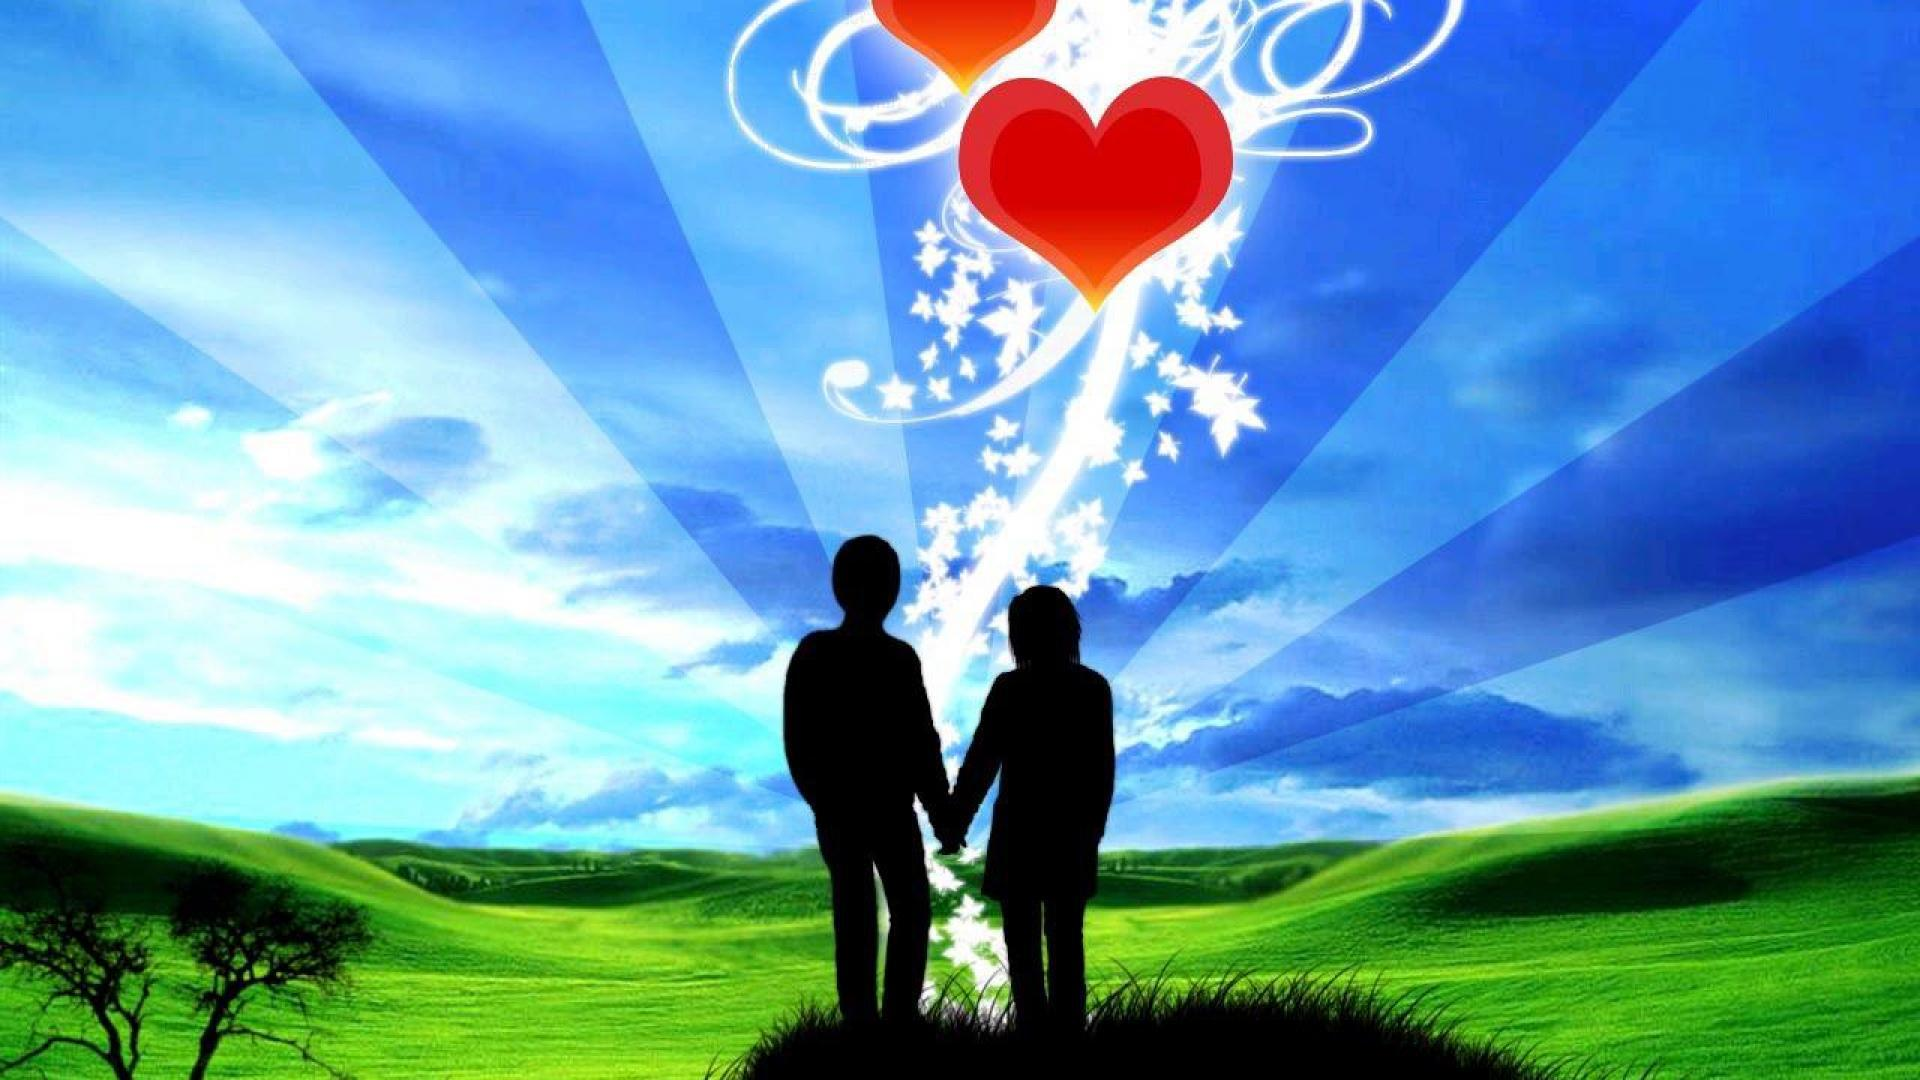 Little Boy And Girl In Love Love Wallpapers Free Download